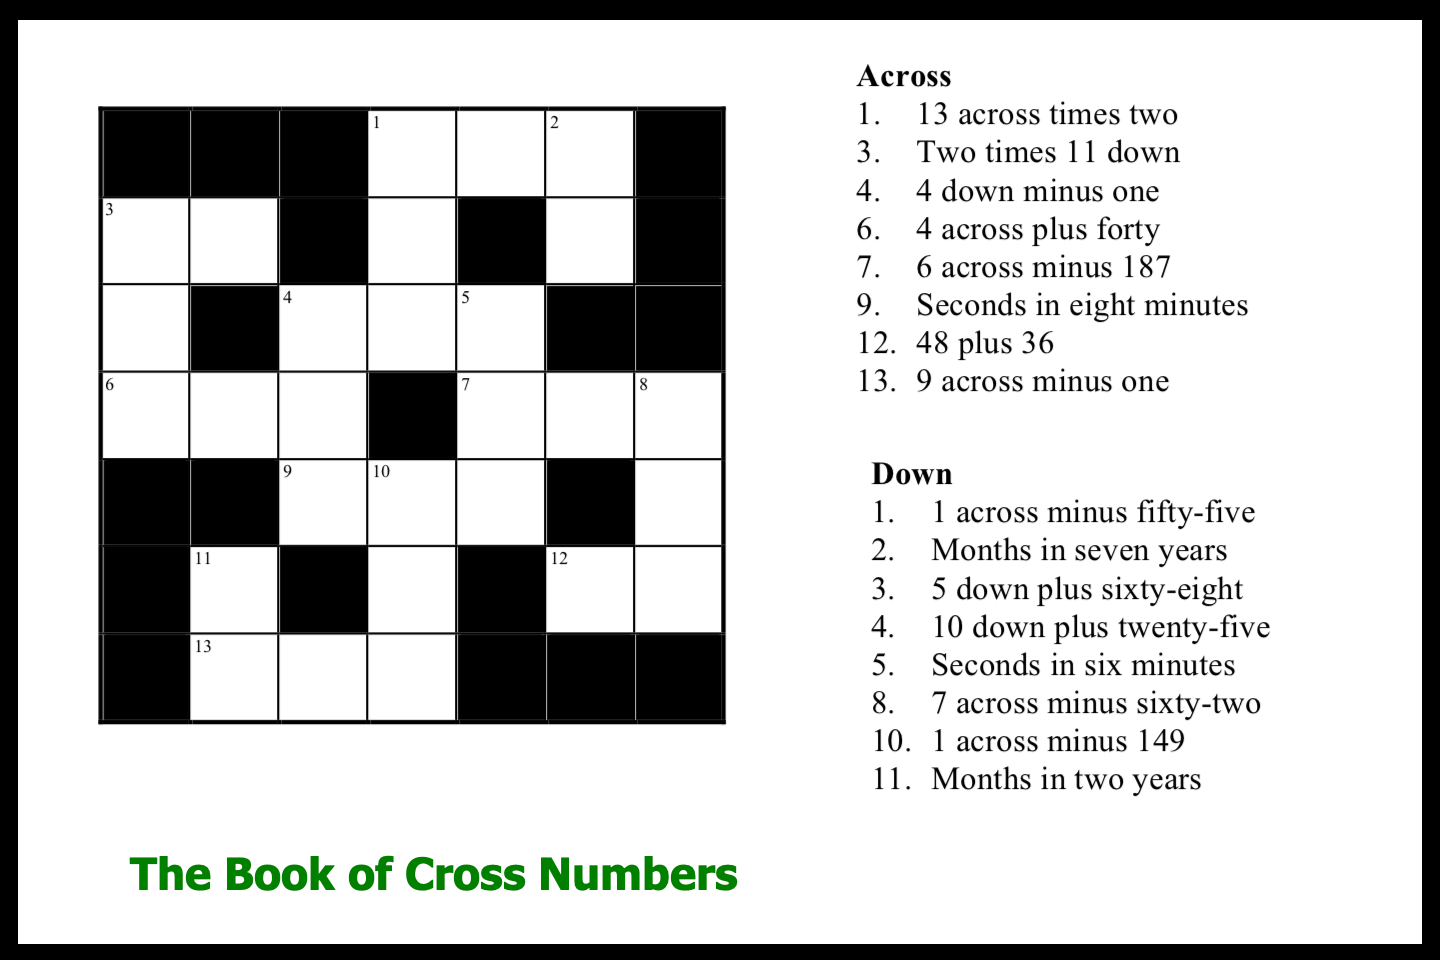 The Book of Cross Numbers